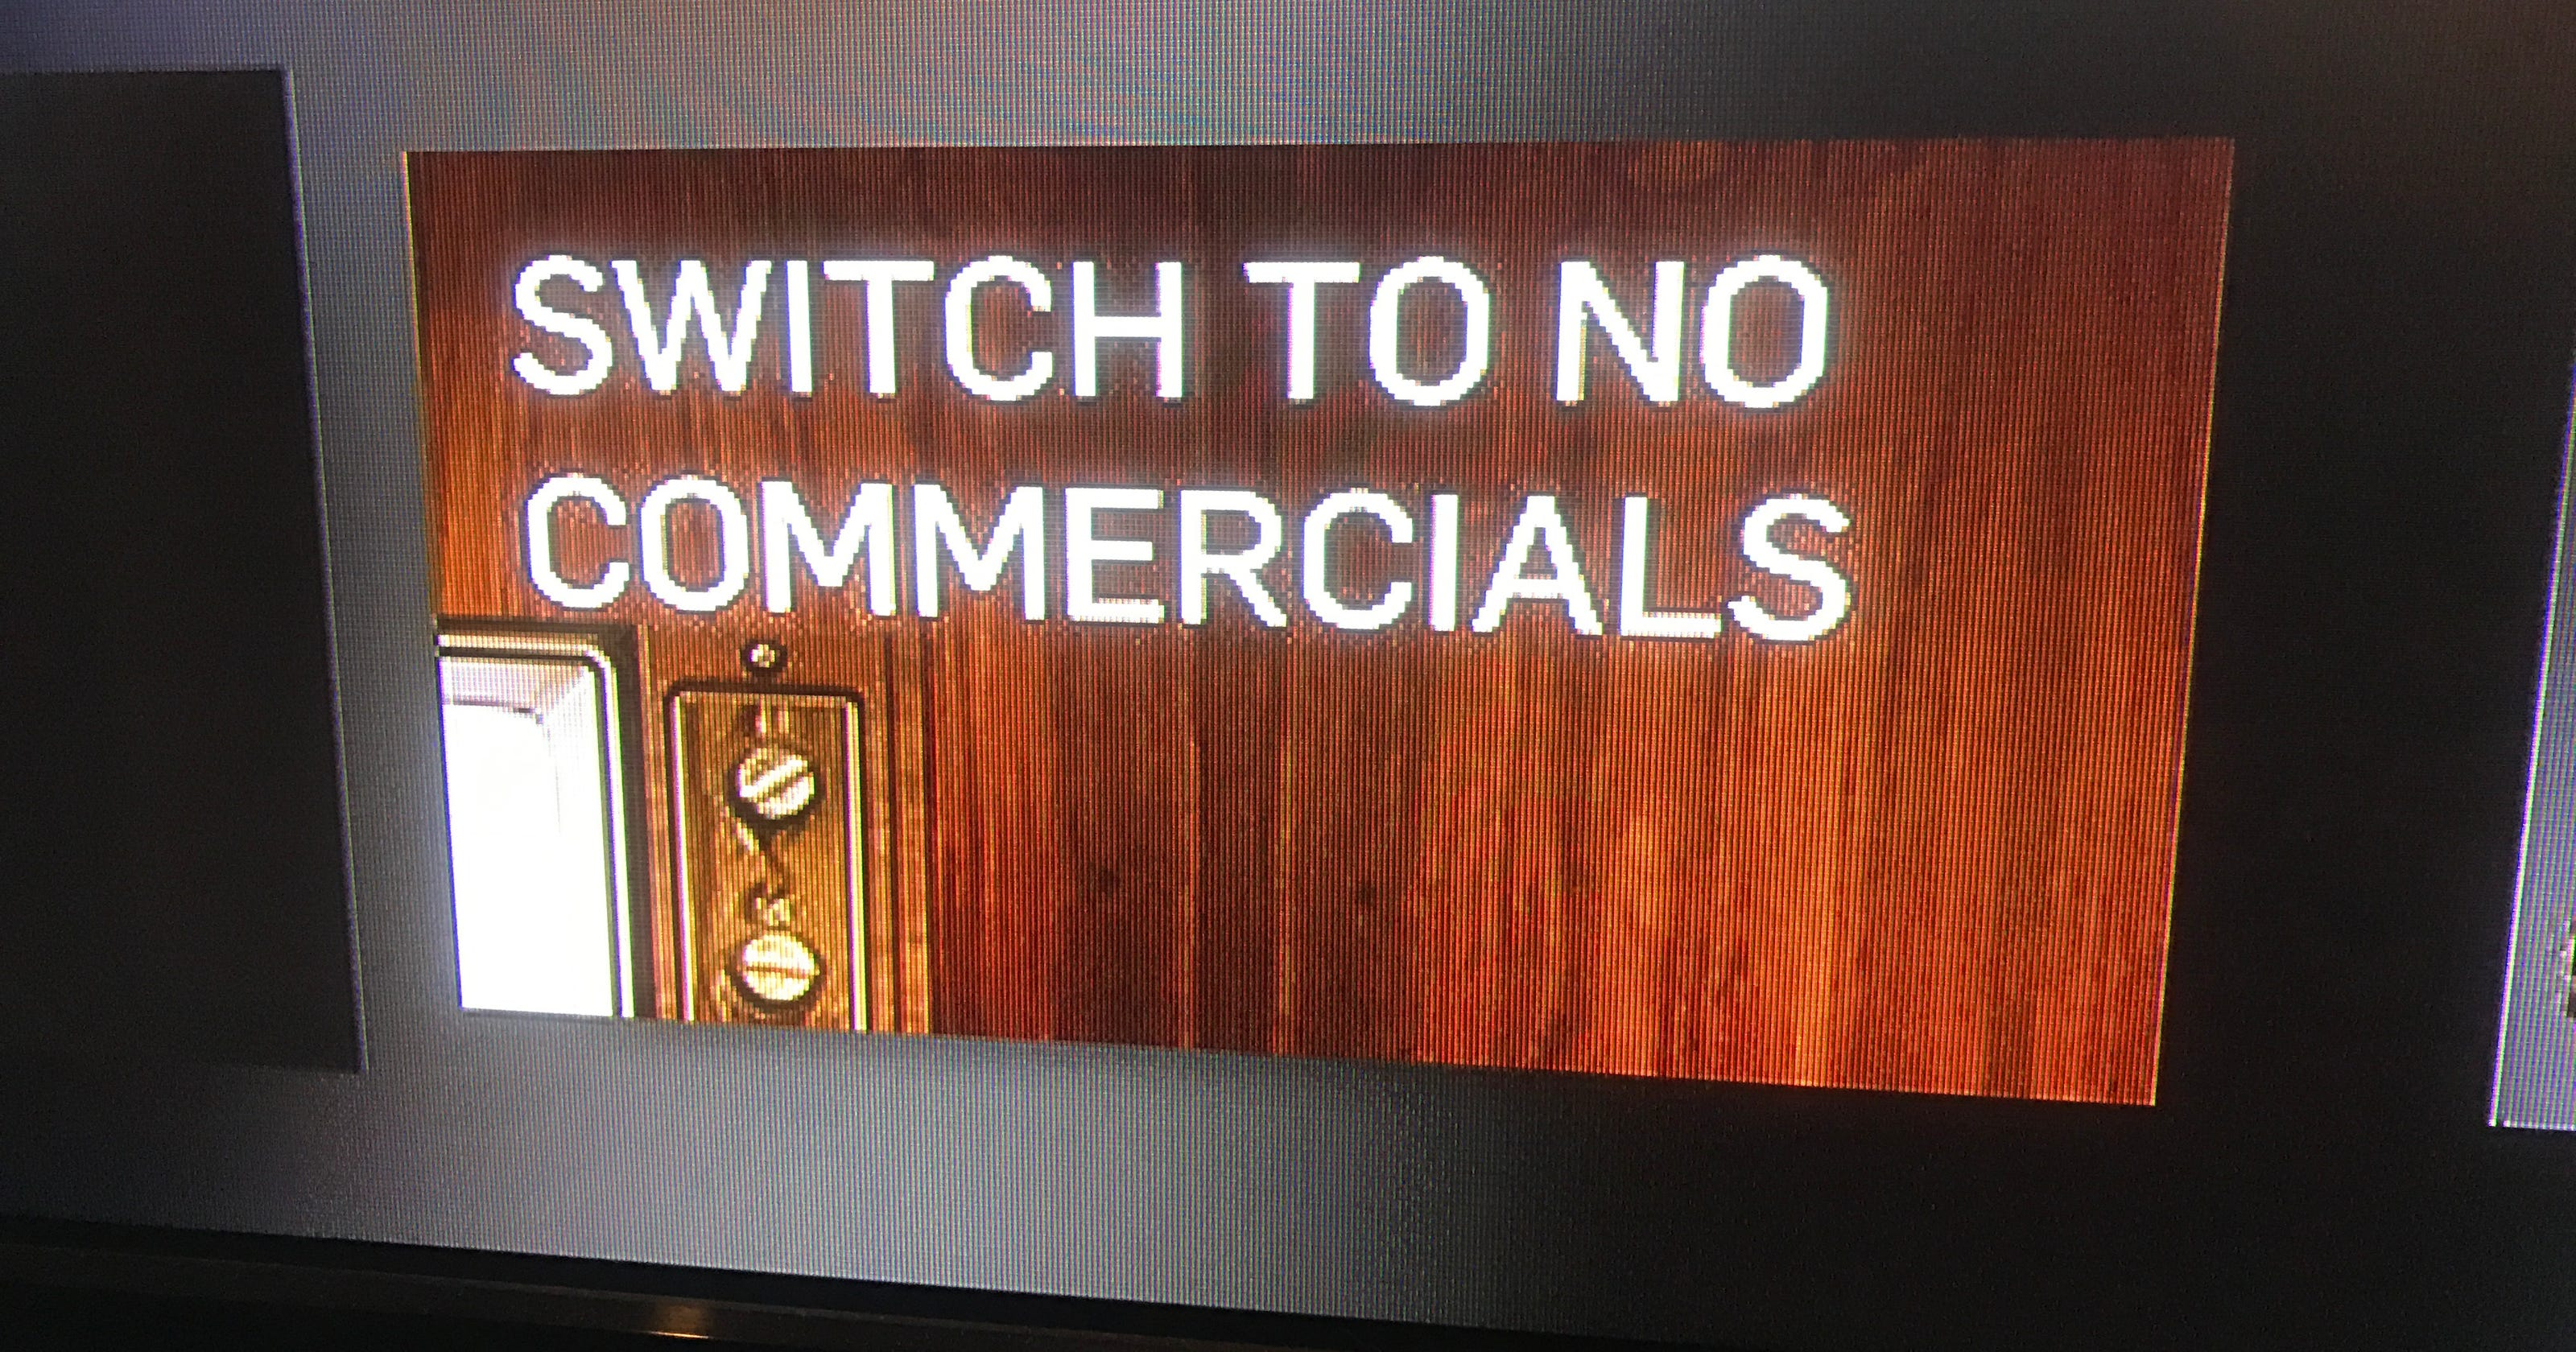 Hulu's 'Limited Commercials' not so